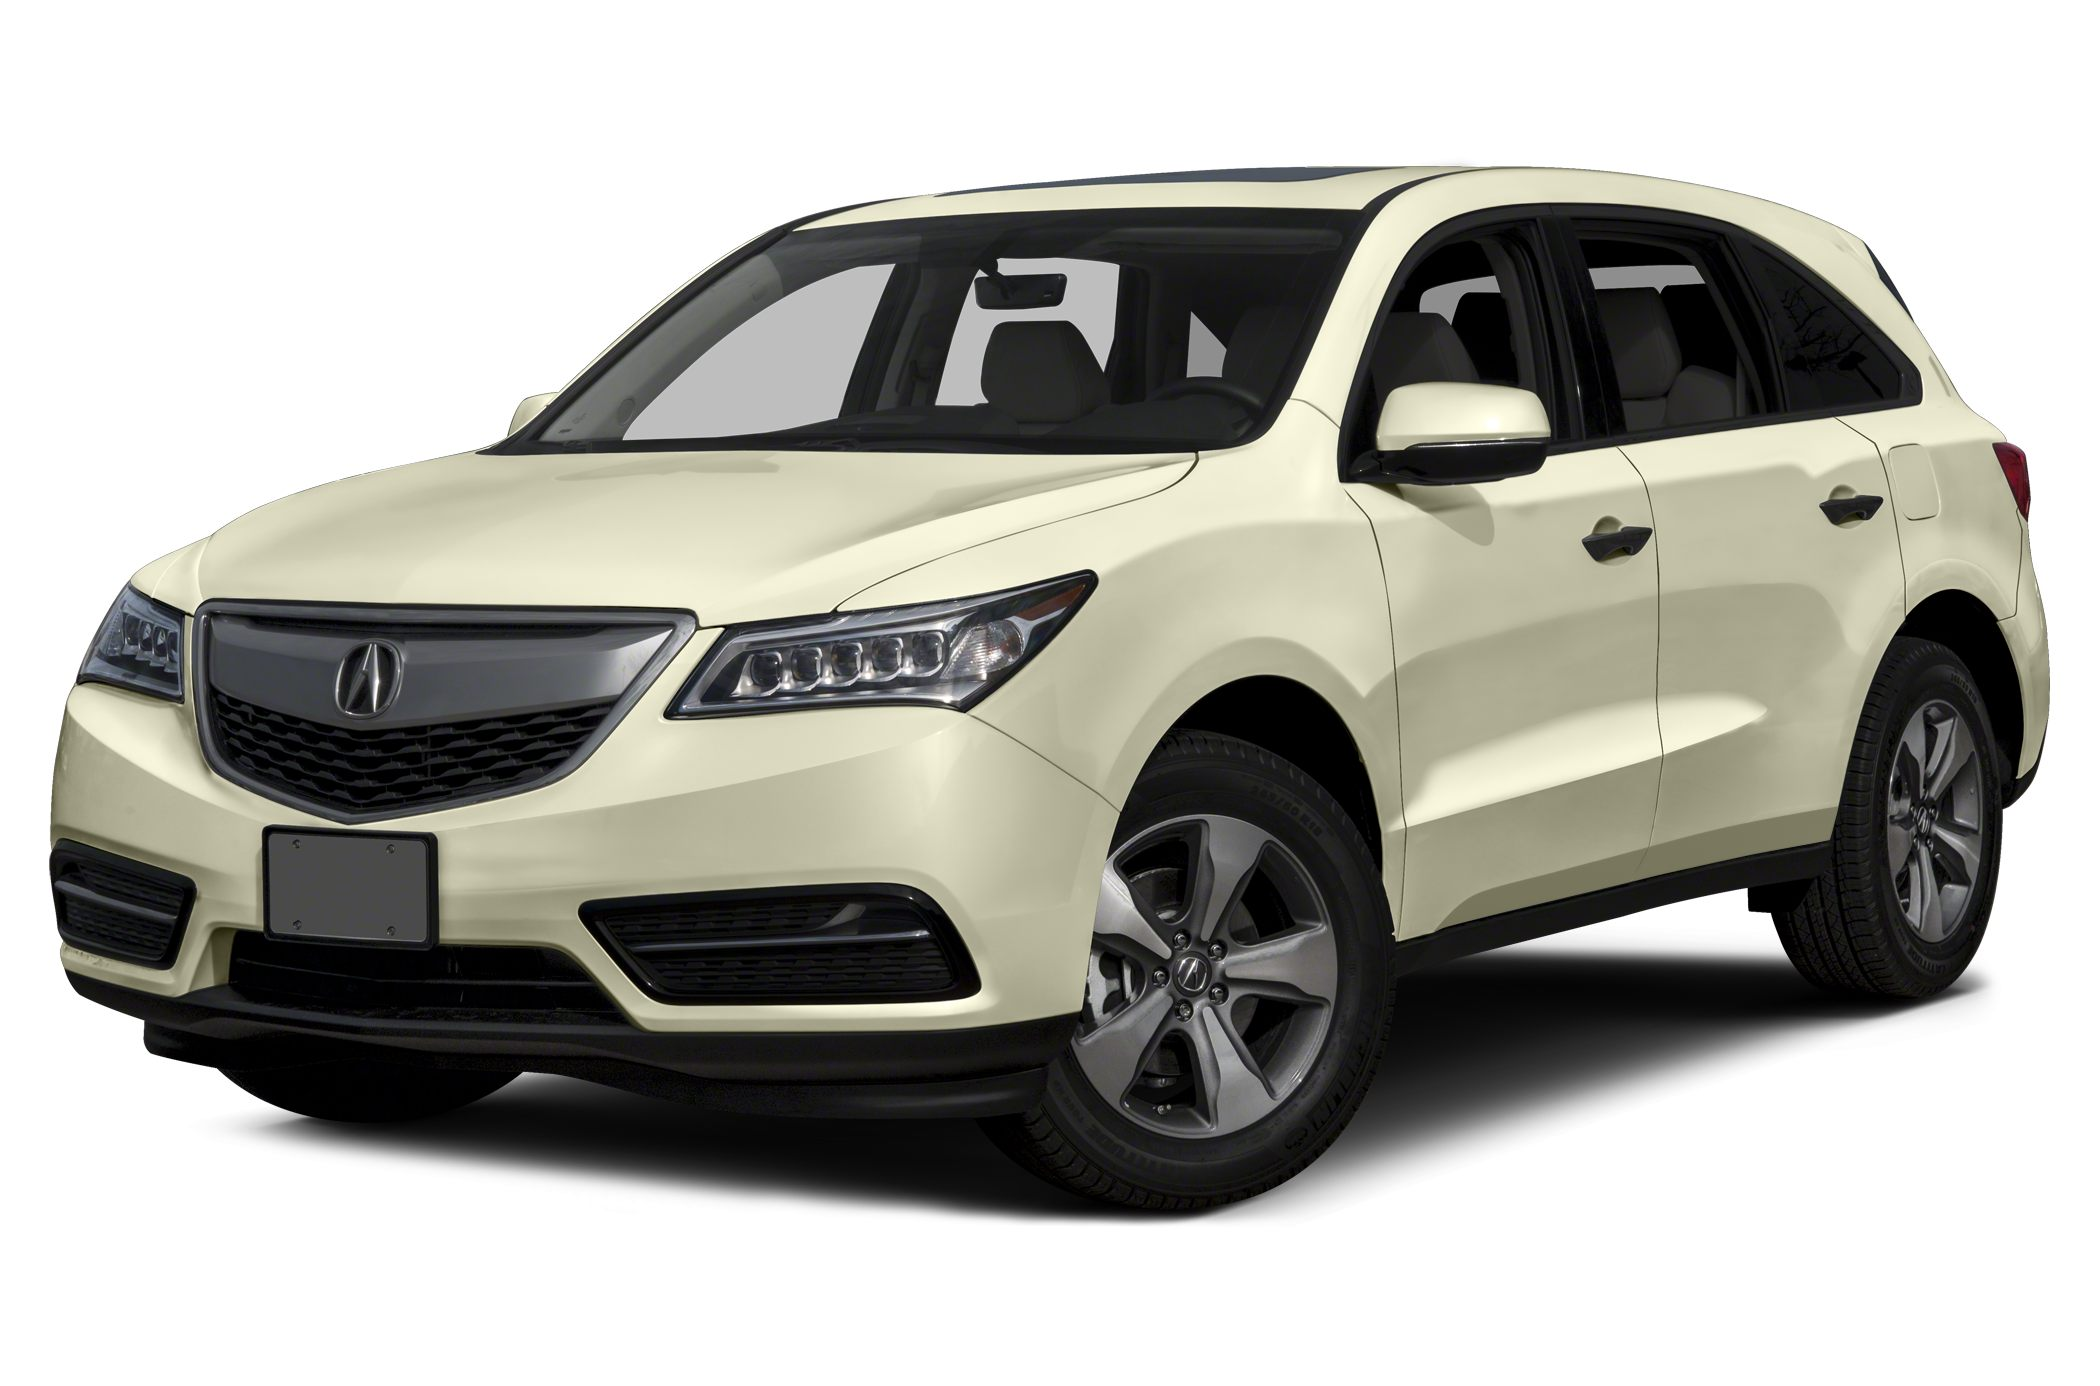 2016 Acura MDX 35 Technology VERY LOW MILES1 OWNERCARFAX CERTIFIEDAWD READY FOR ANY WEATH